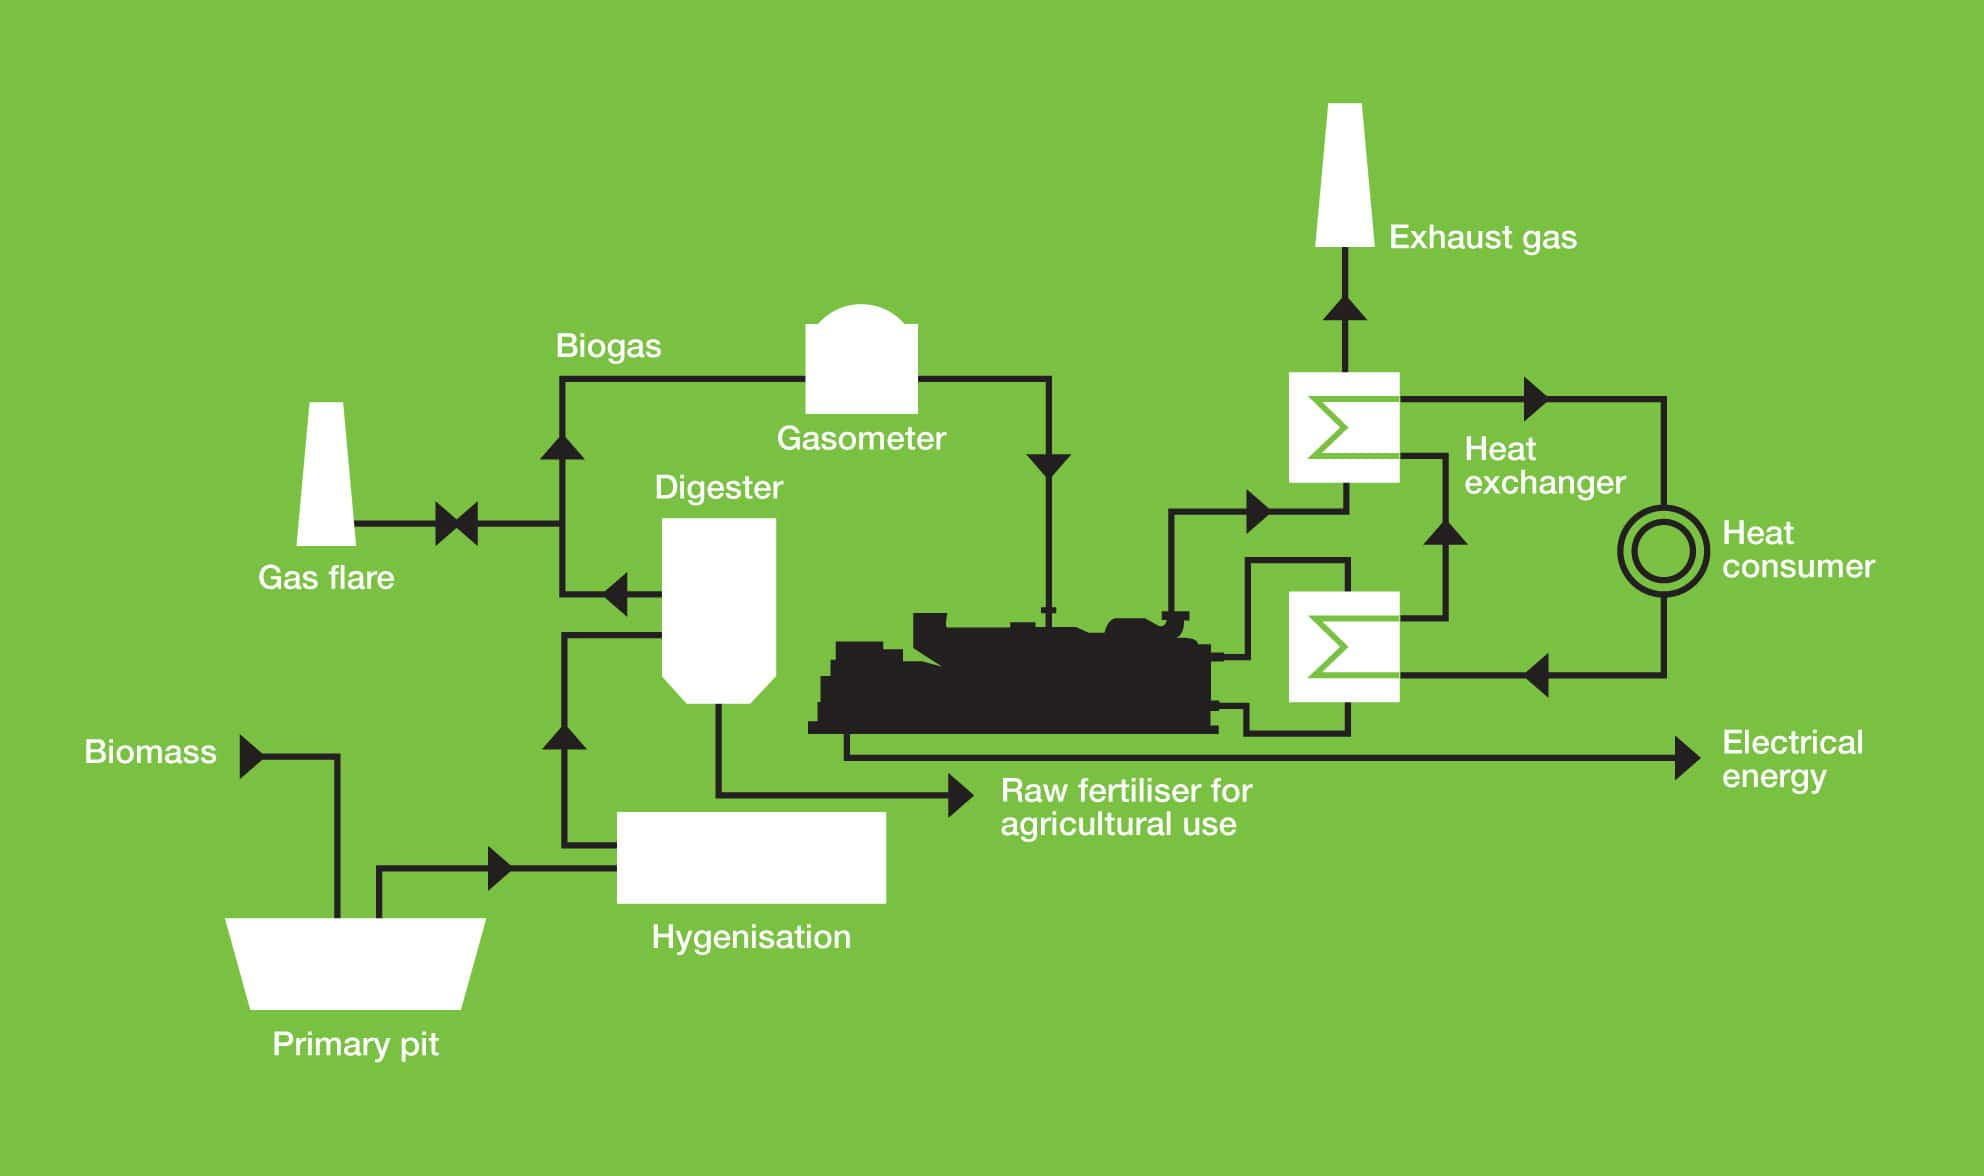 Biogas | CHP | Cogeneration | Combined heat and power